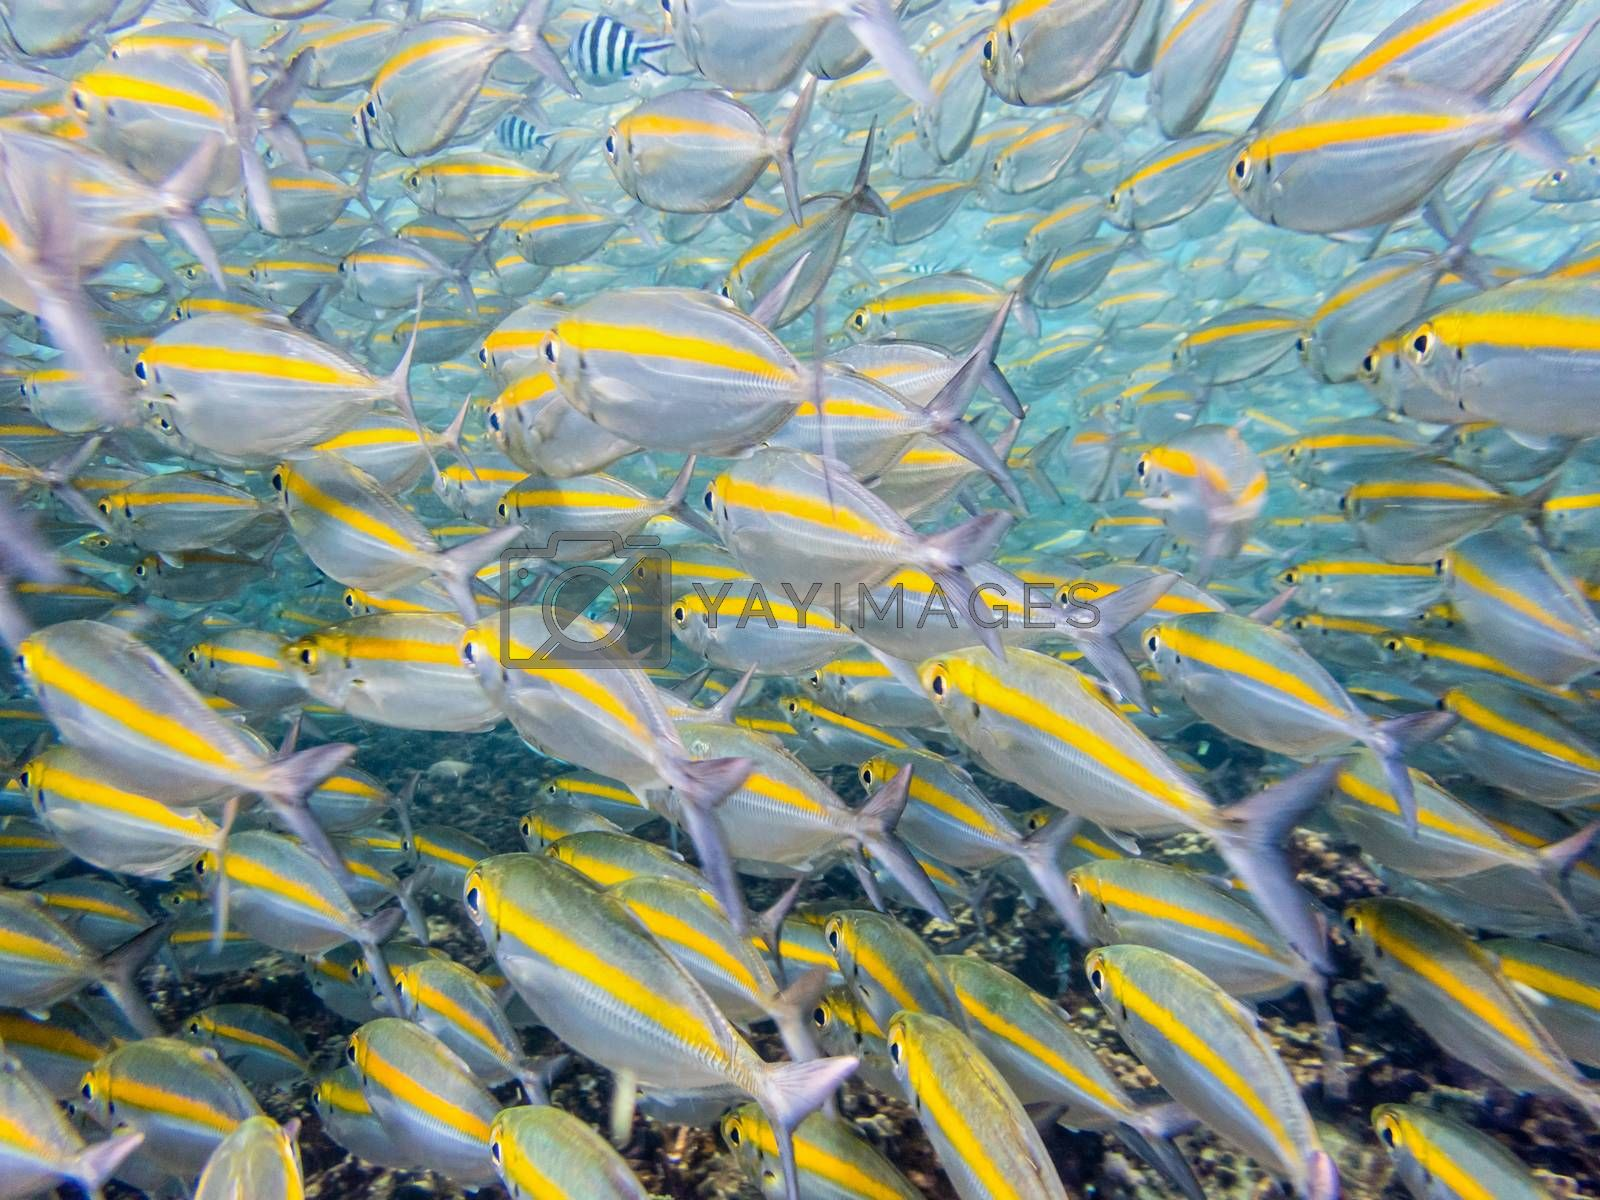 Underwater photos group of Goldband Fusilier or Pterocaesio Chrysozona is a sea fish herd with a bright yellow stripe beautiful at Koh Nang Yuan island in Thailand